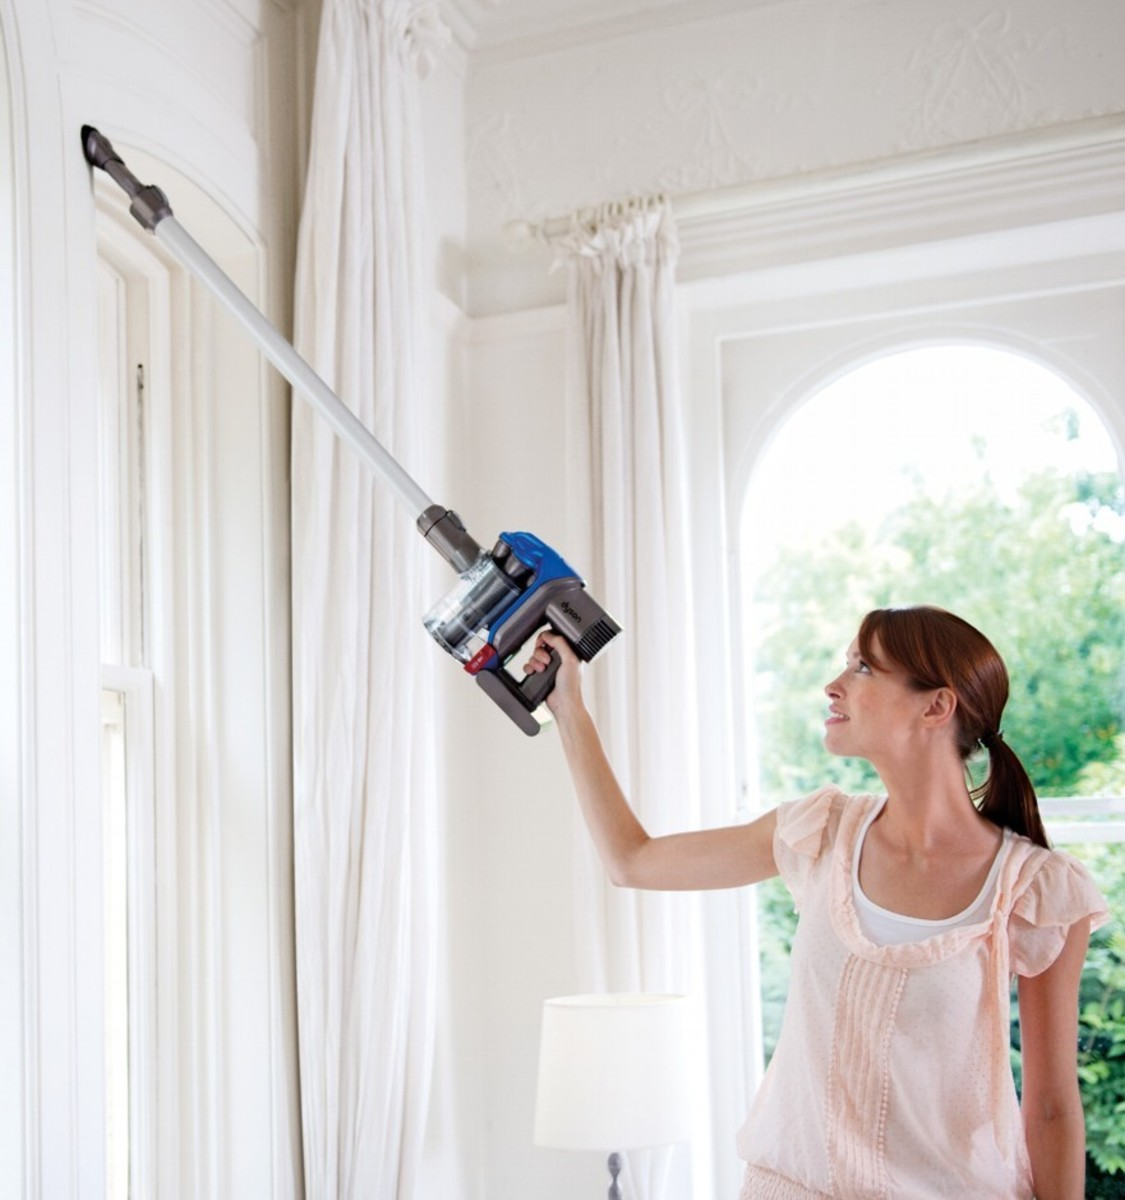 Dyson DC35 Portable Review: The Best Cordless or Battery Vacuum Cleaner